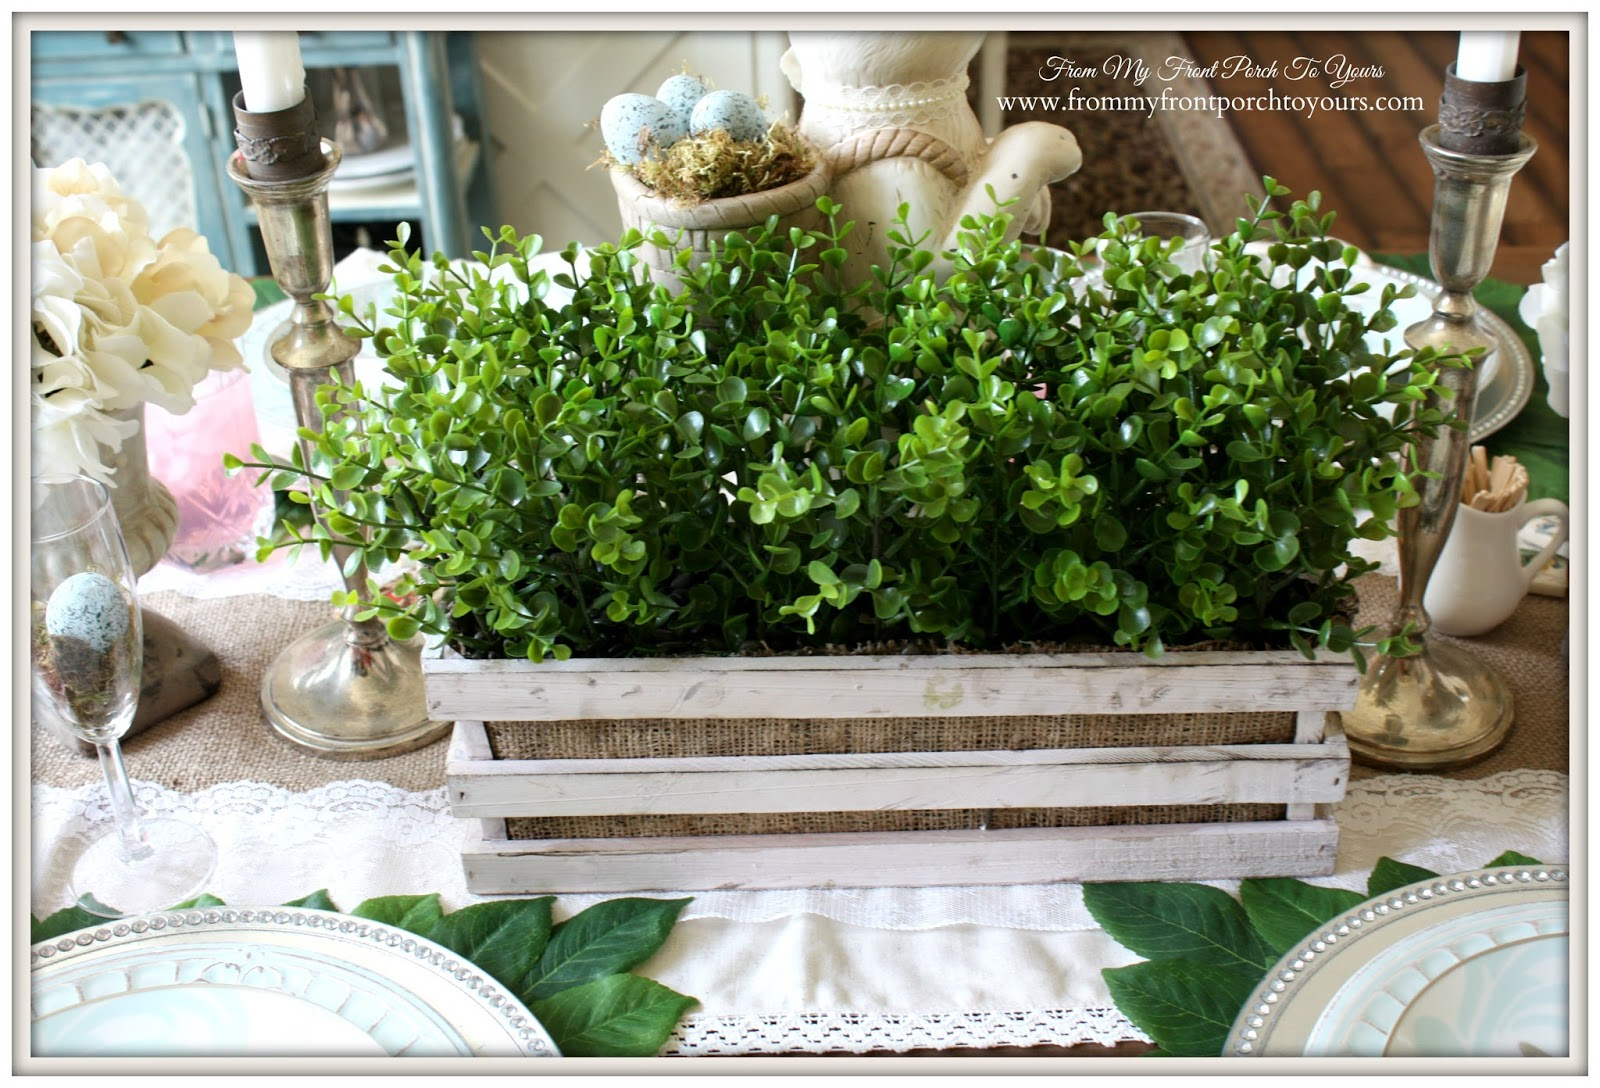 Faux Boxwood Crate-French Farmhouse Easter Dining Room-Greenery- From My Front Porch To Yours